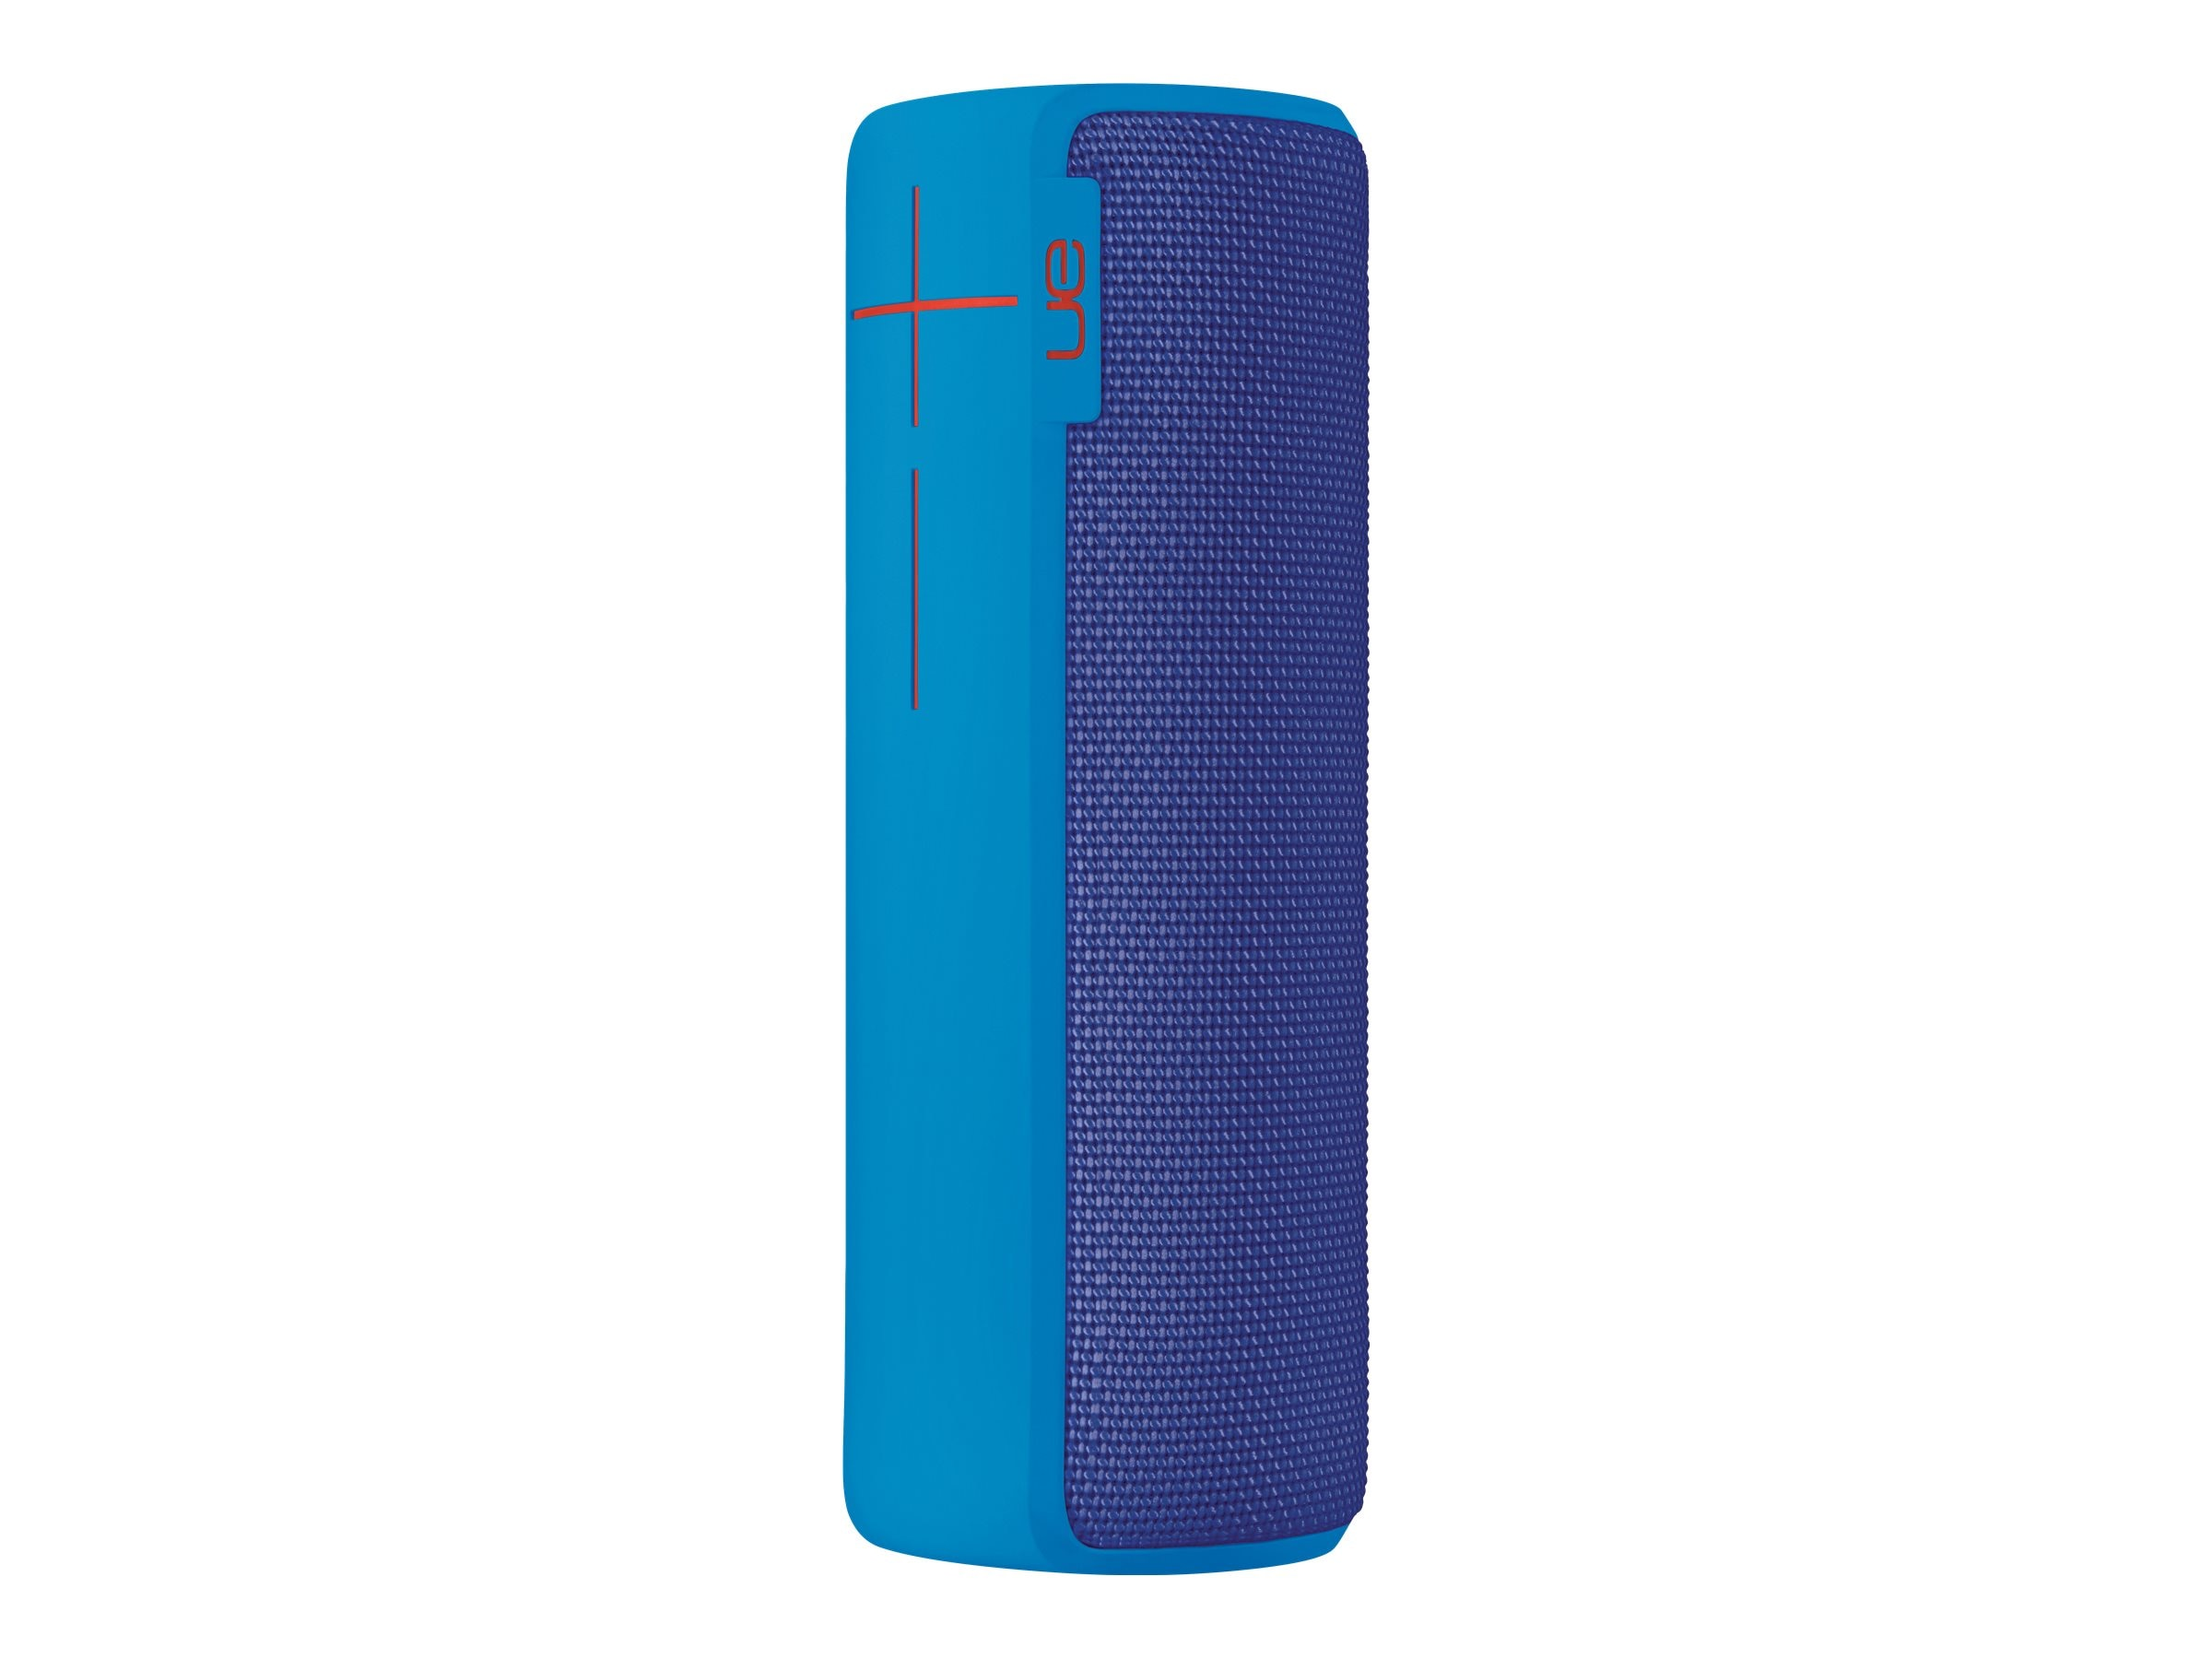 Logitech UE Boom 2 Wireless Speaker, BrainFreeze, 984-000552, 30971001, Speakers - Audio